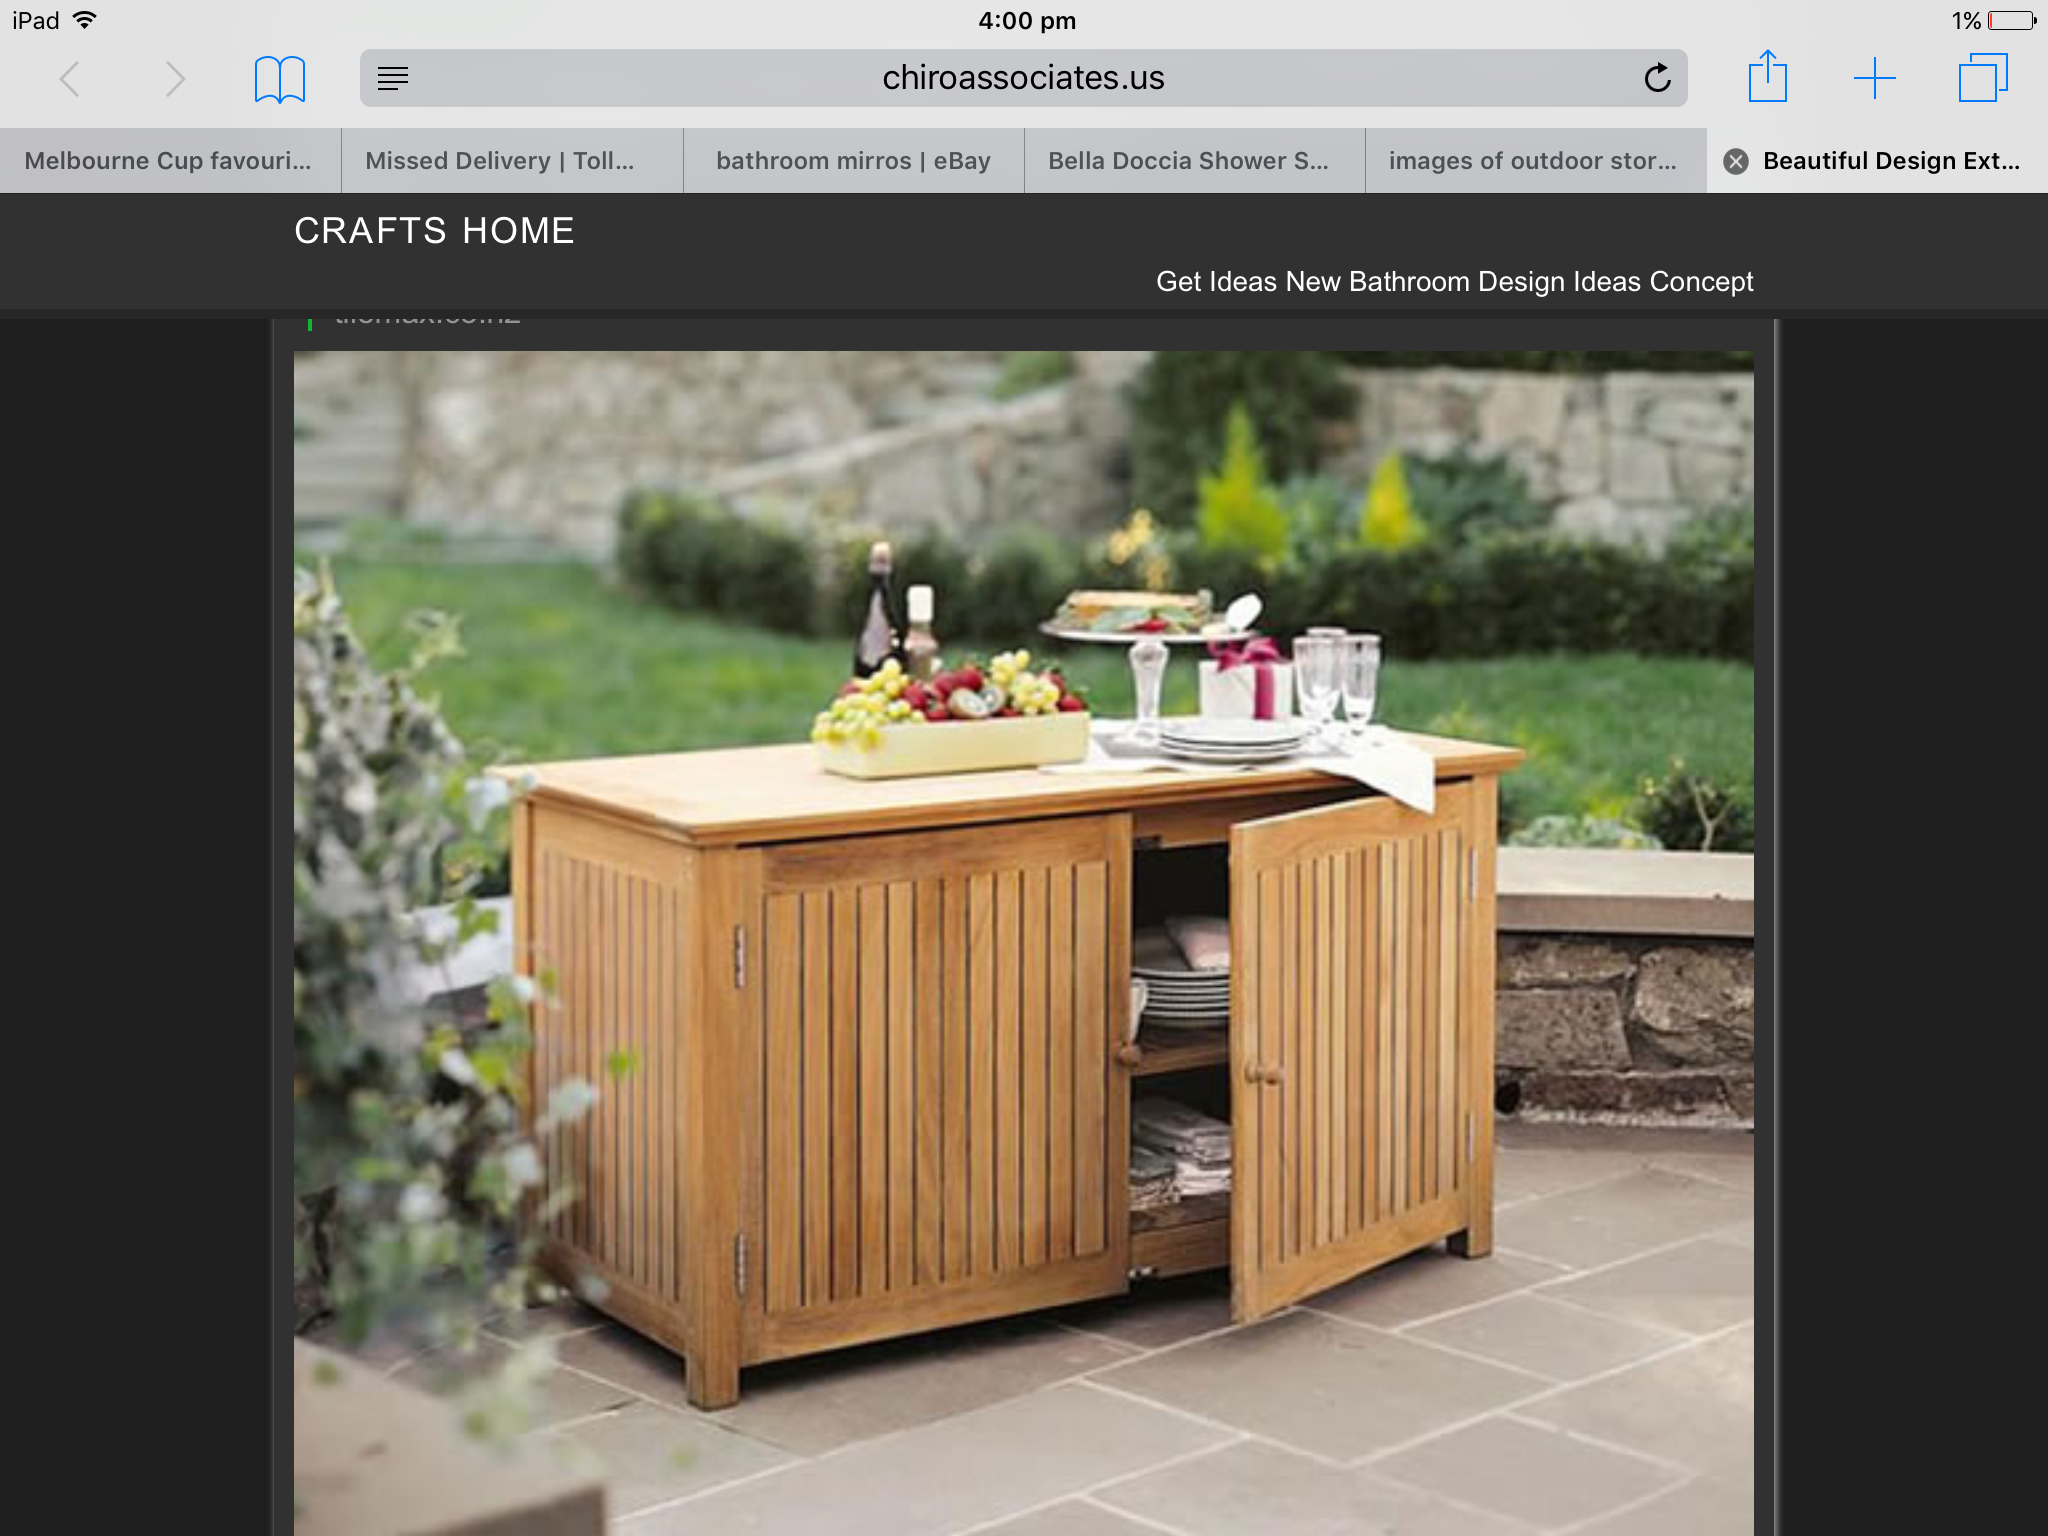 Beau Bar Chest Cabinet Teak Garden Outdoor Patio Furniture